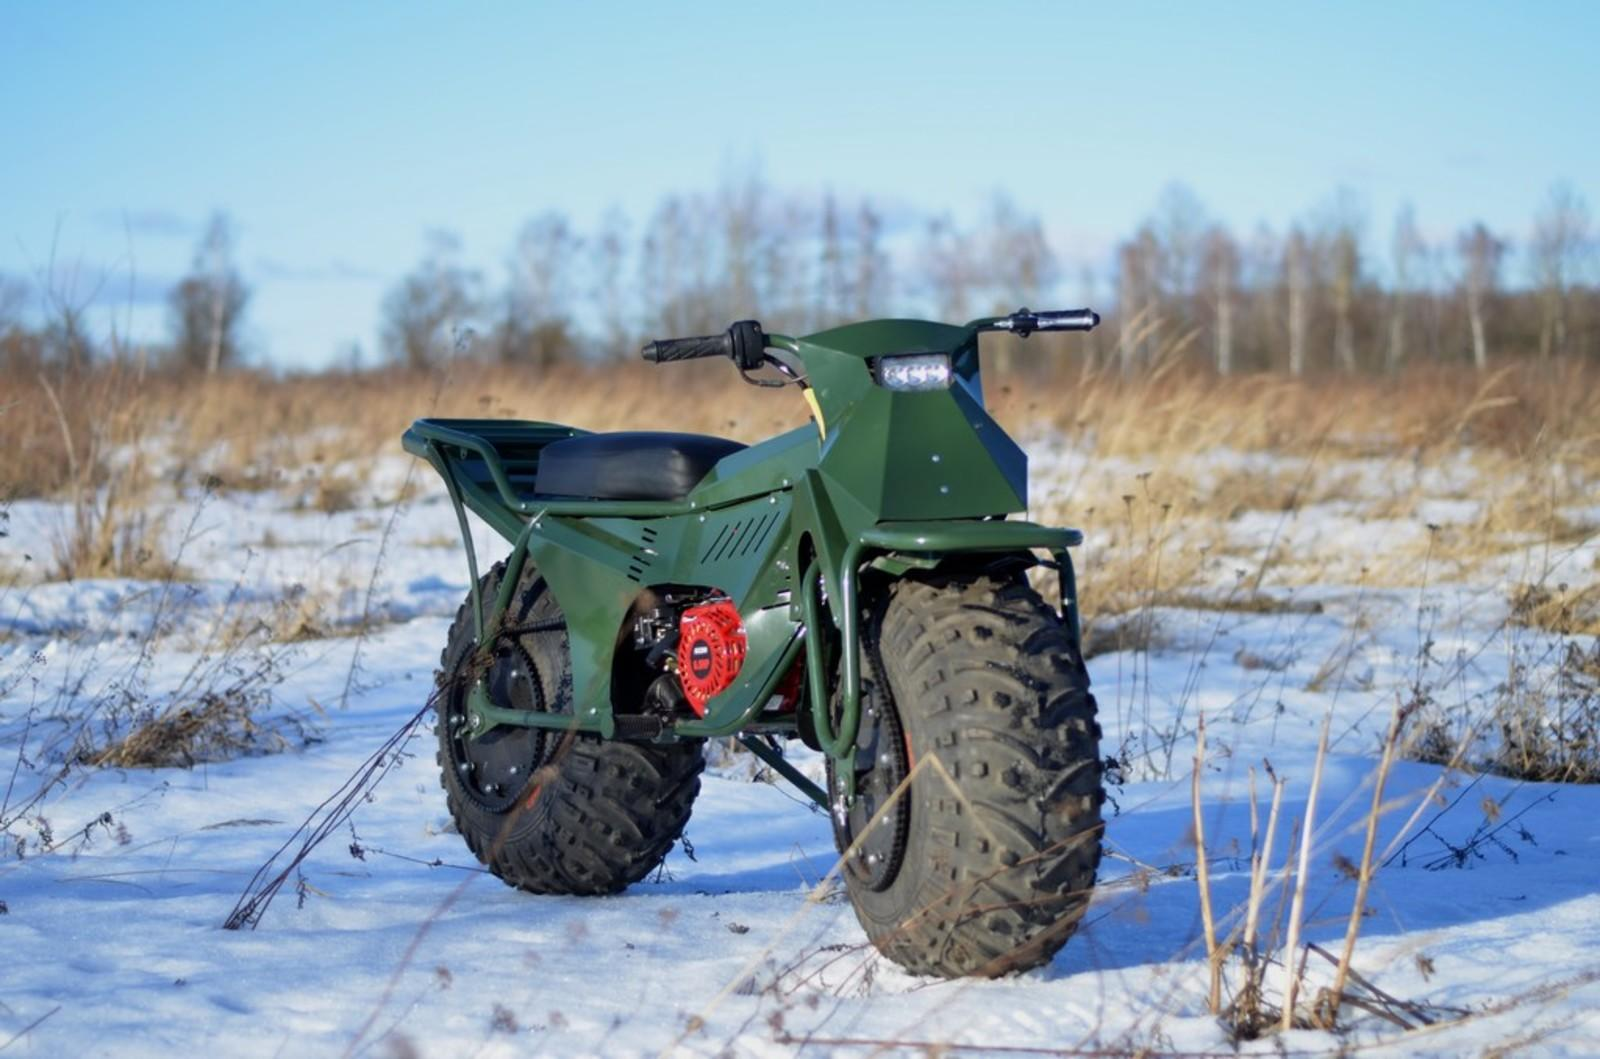 Russian Made Awd Motorcycle That Can Be Packed In Your